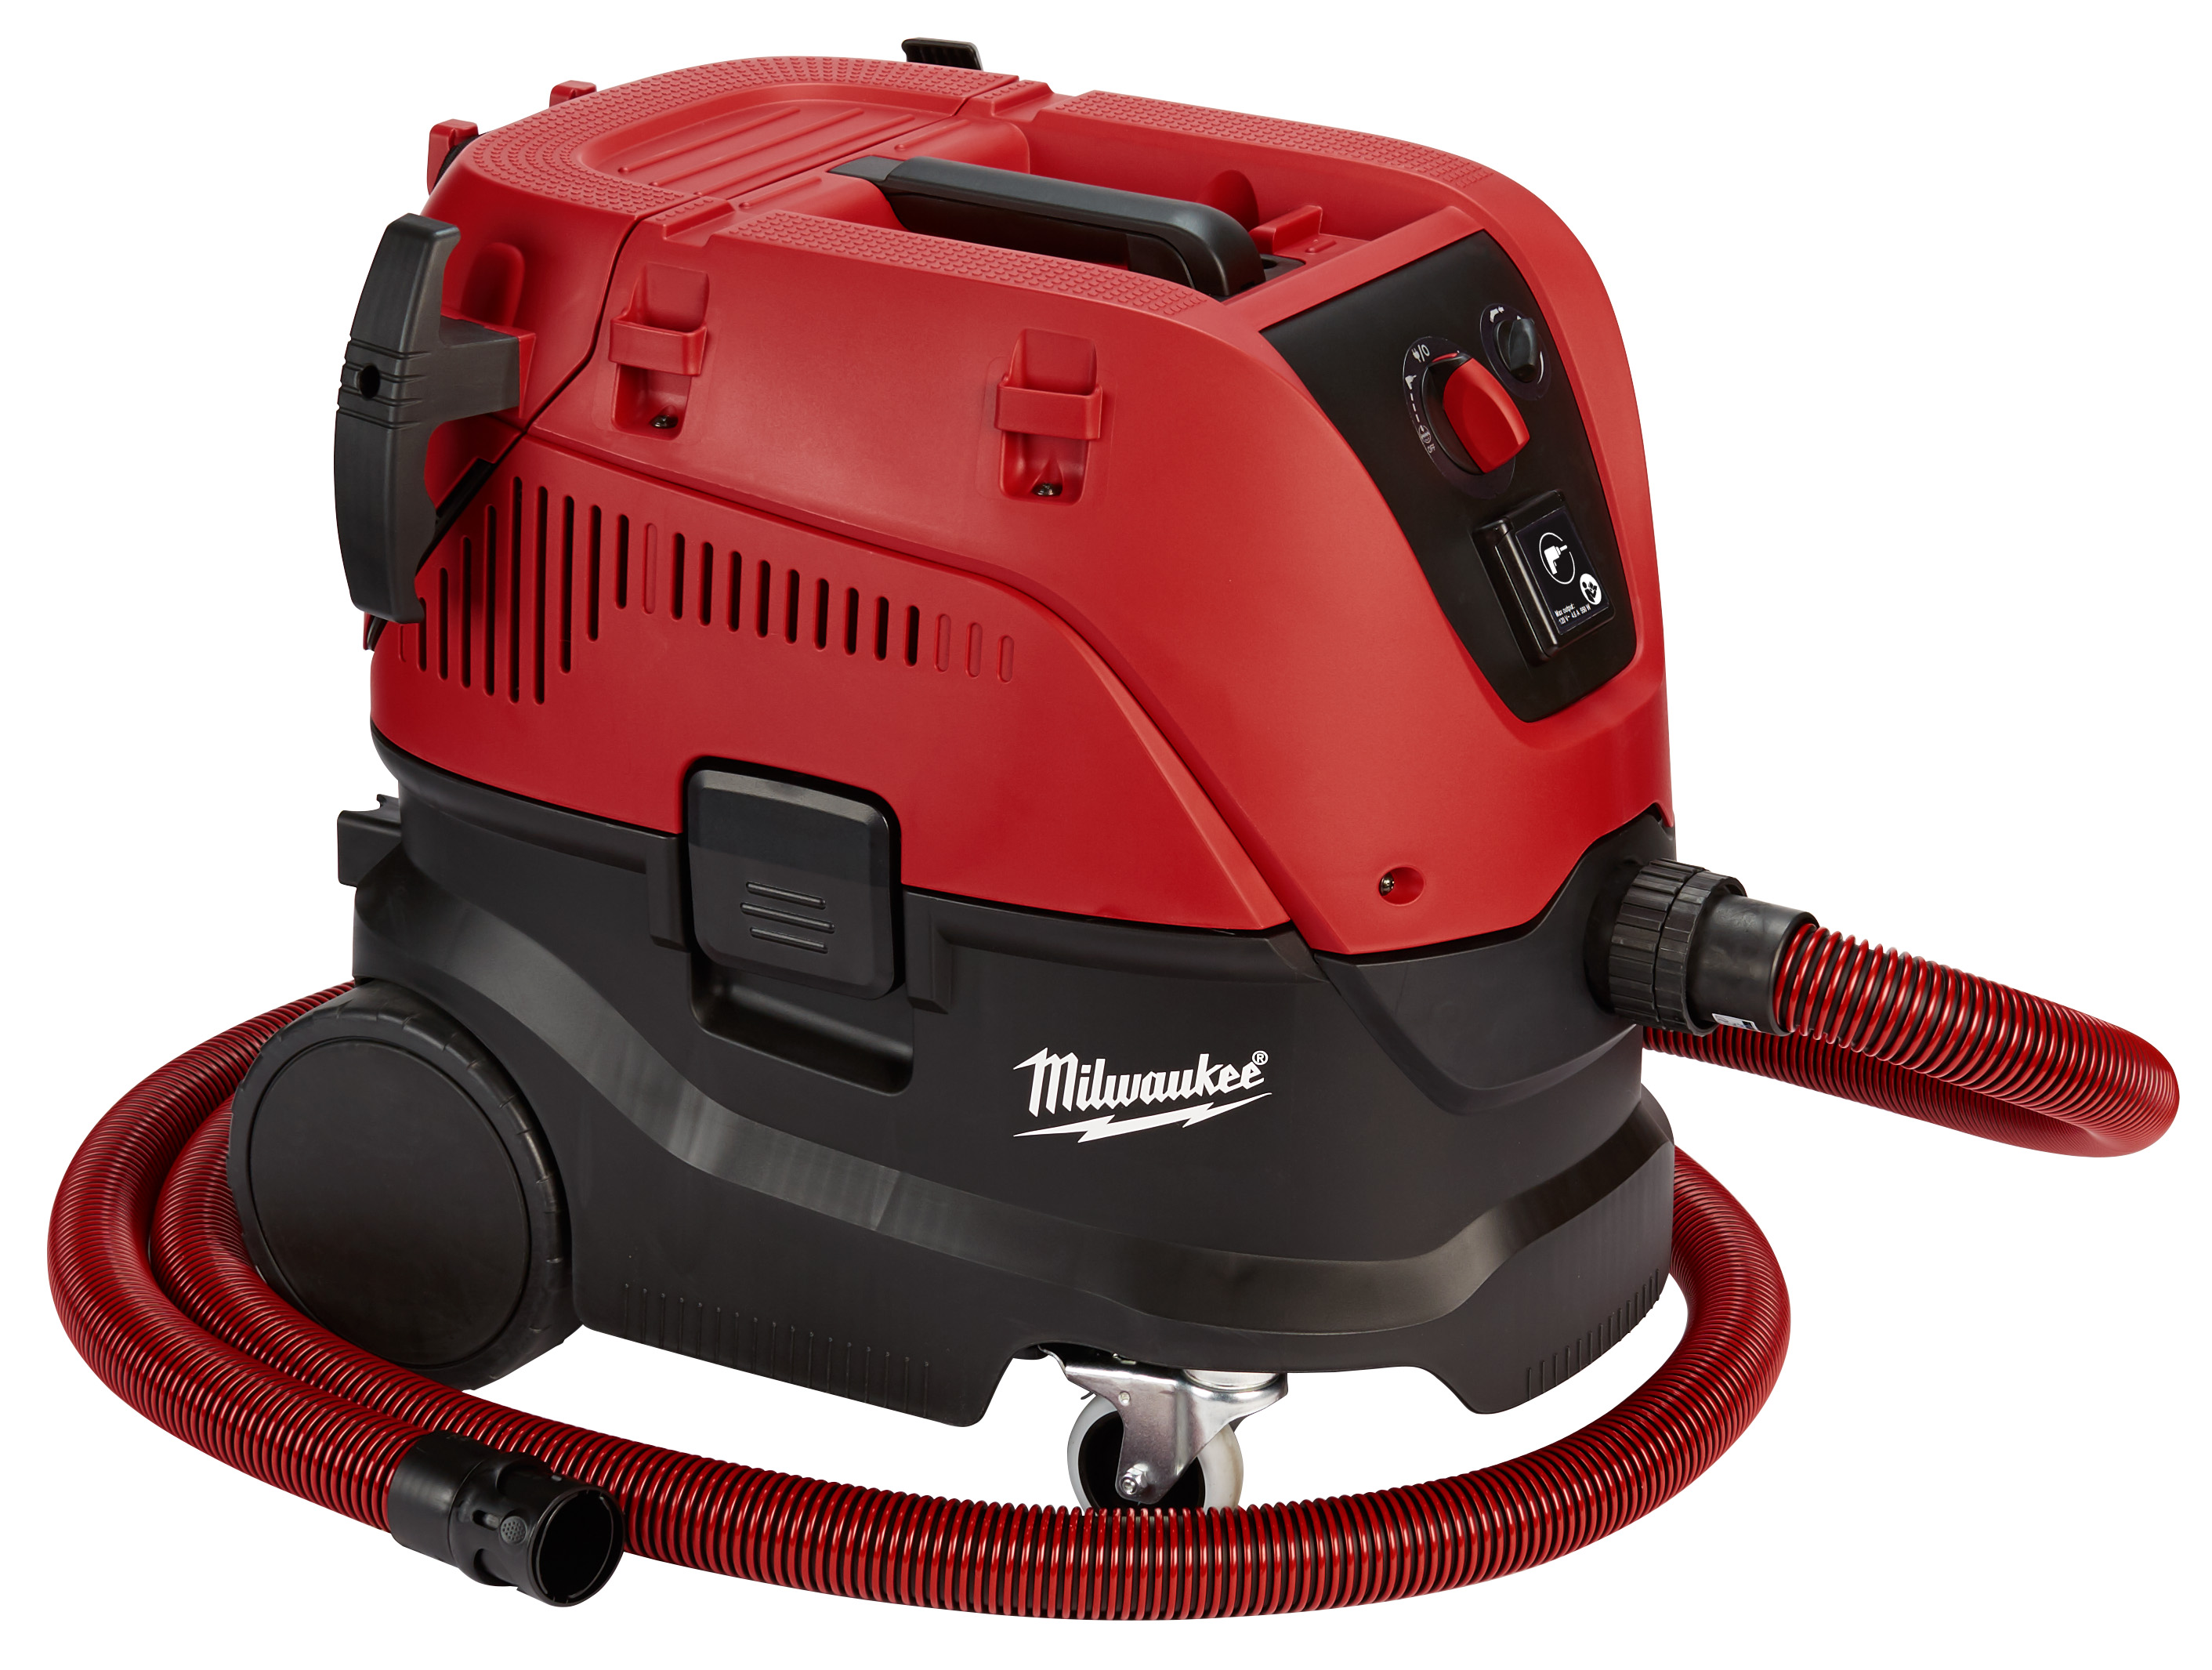 Milwaukee® 8960-20 Cordless Dust Extractor, 12 A, 8 gal Tank, 1.93 hp Power Rating